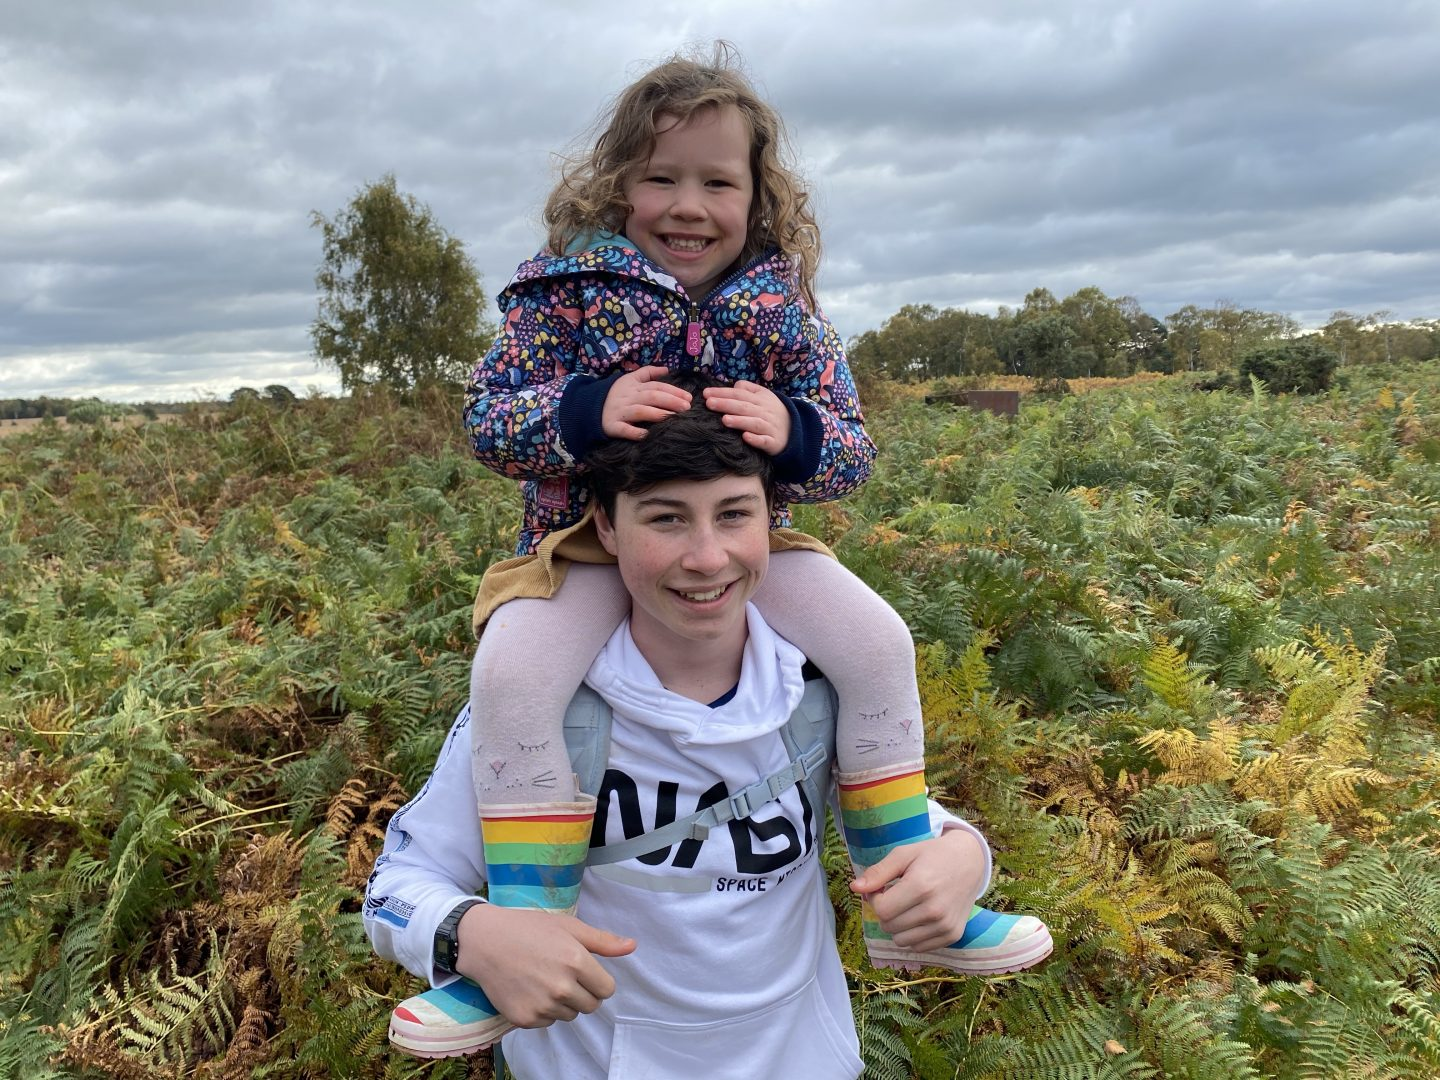 an ordinary family week with a teenager carrying his younger sister